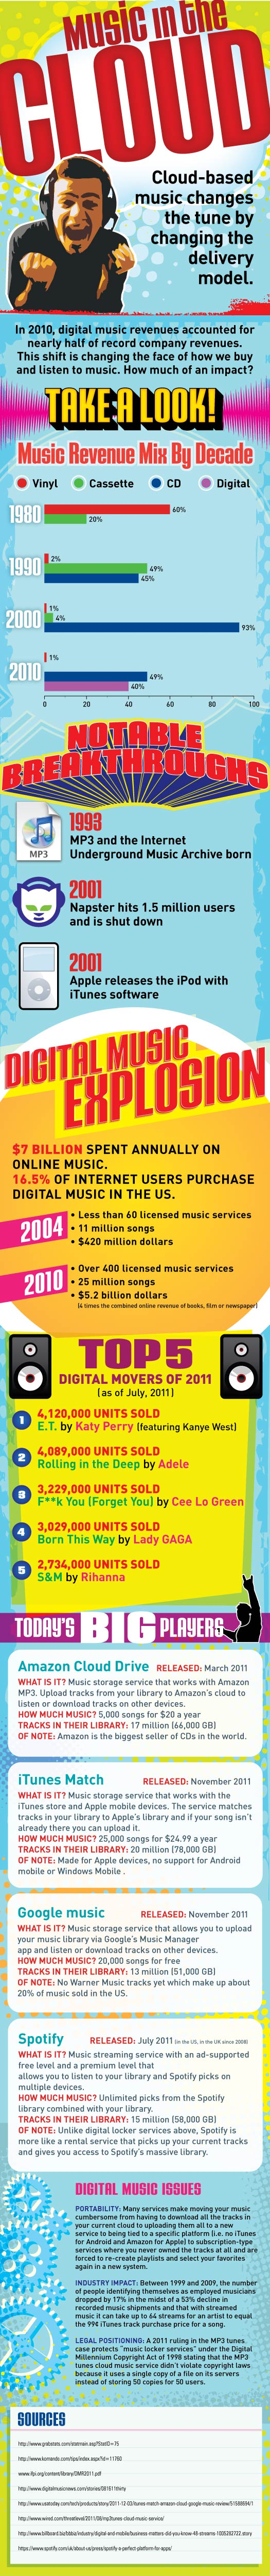 cloud music infographic